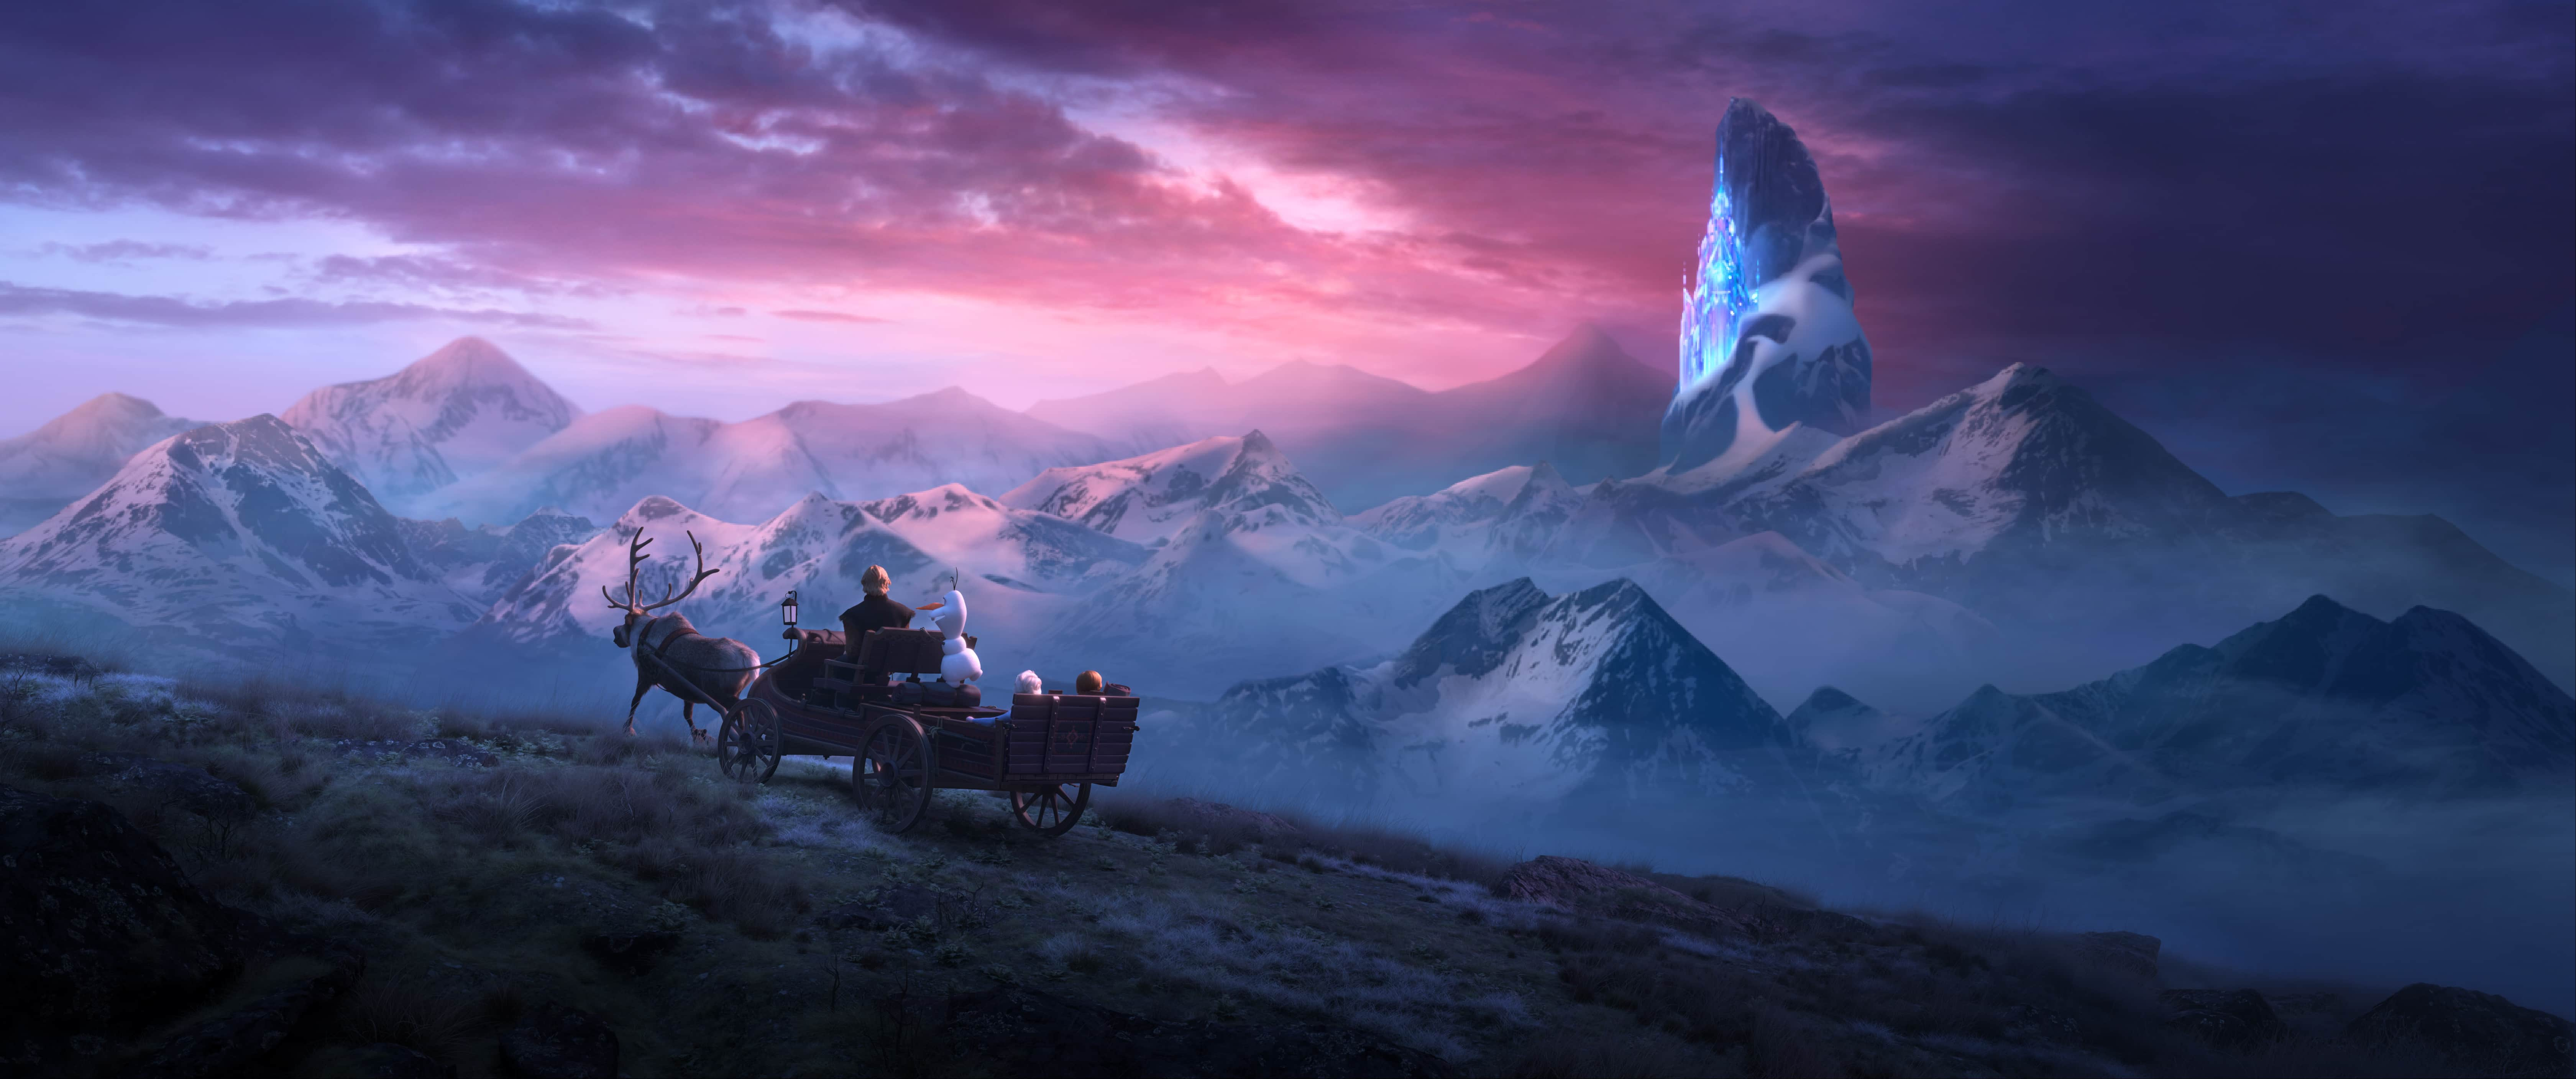 Frozen 2 What We Know So Far